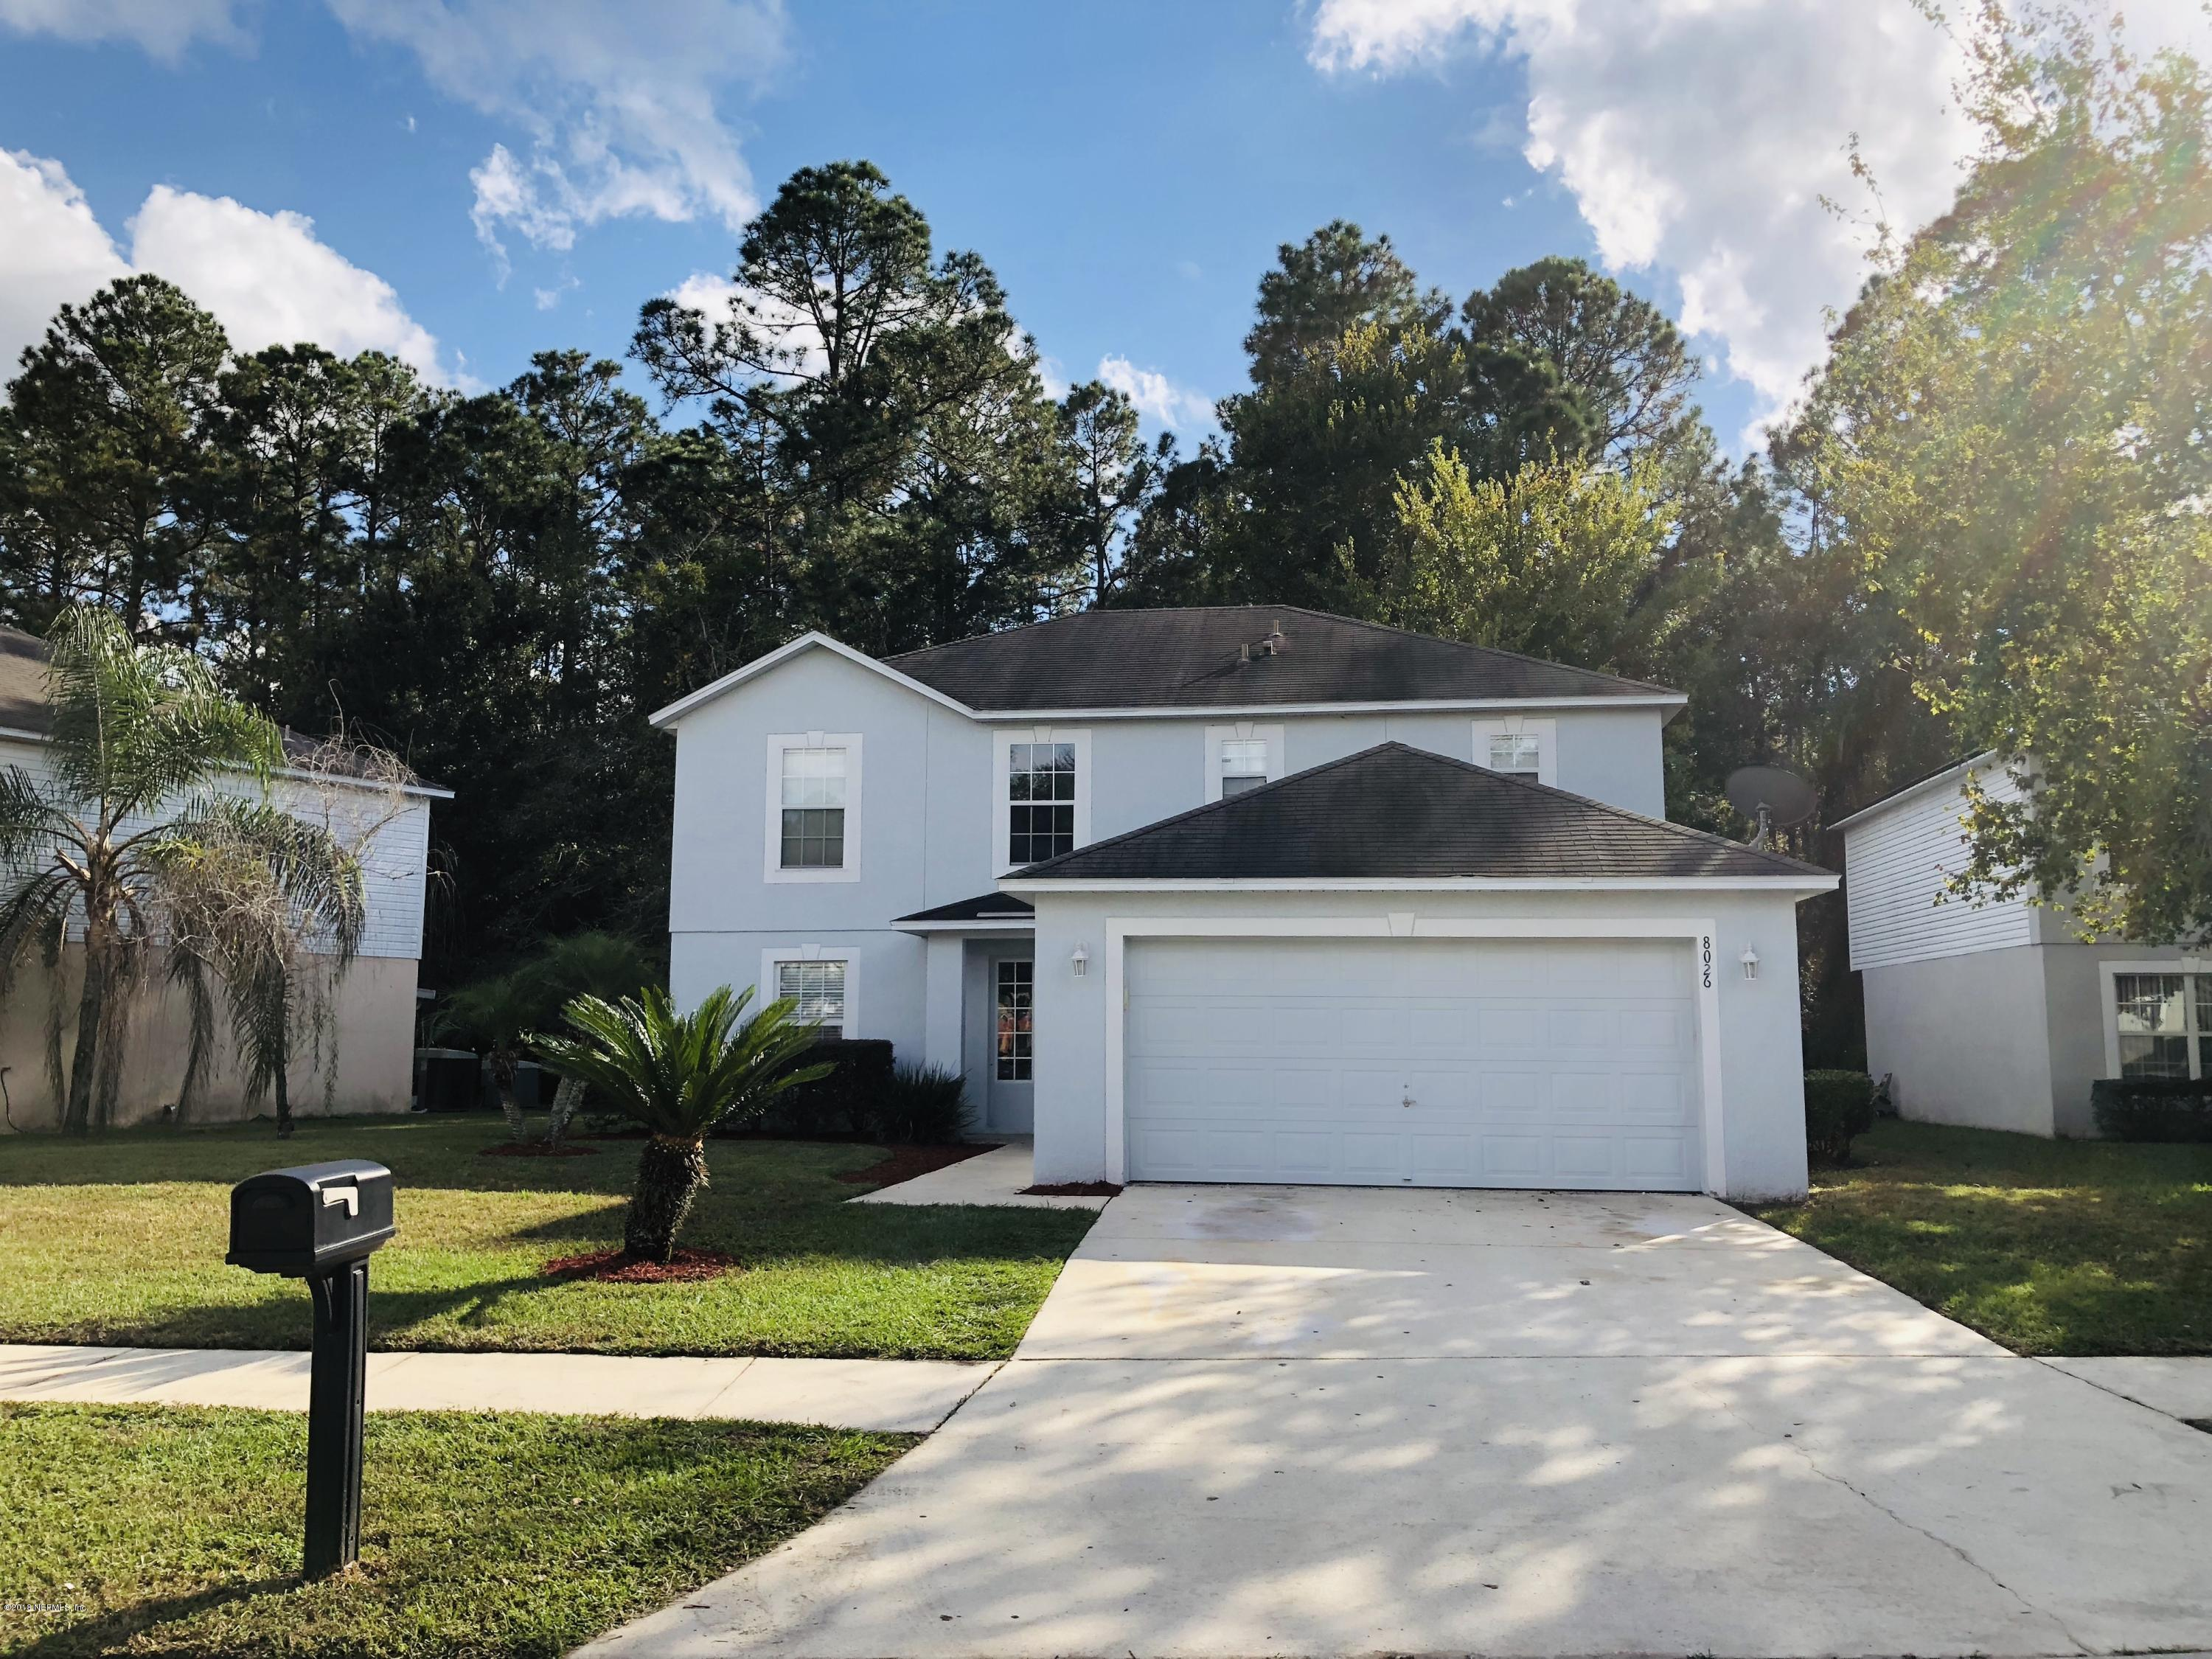 8026 FOXDALE, JACKSONVILLE, FLORIDA 32210, 4 Bedrooms Bedrooms, ,2 BathroomsBathrooms,Residential - single family,For sale,FOXDALE,966736